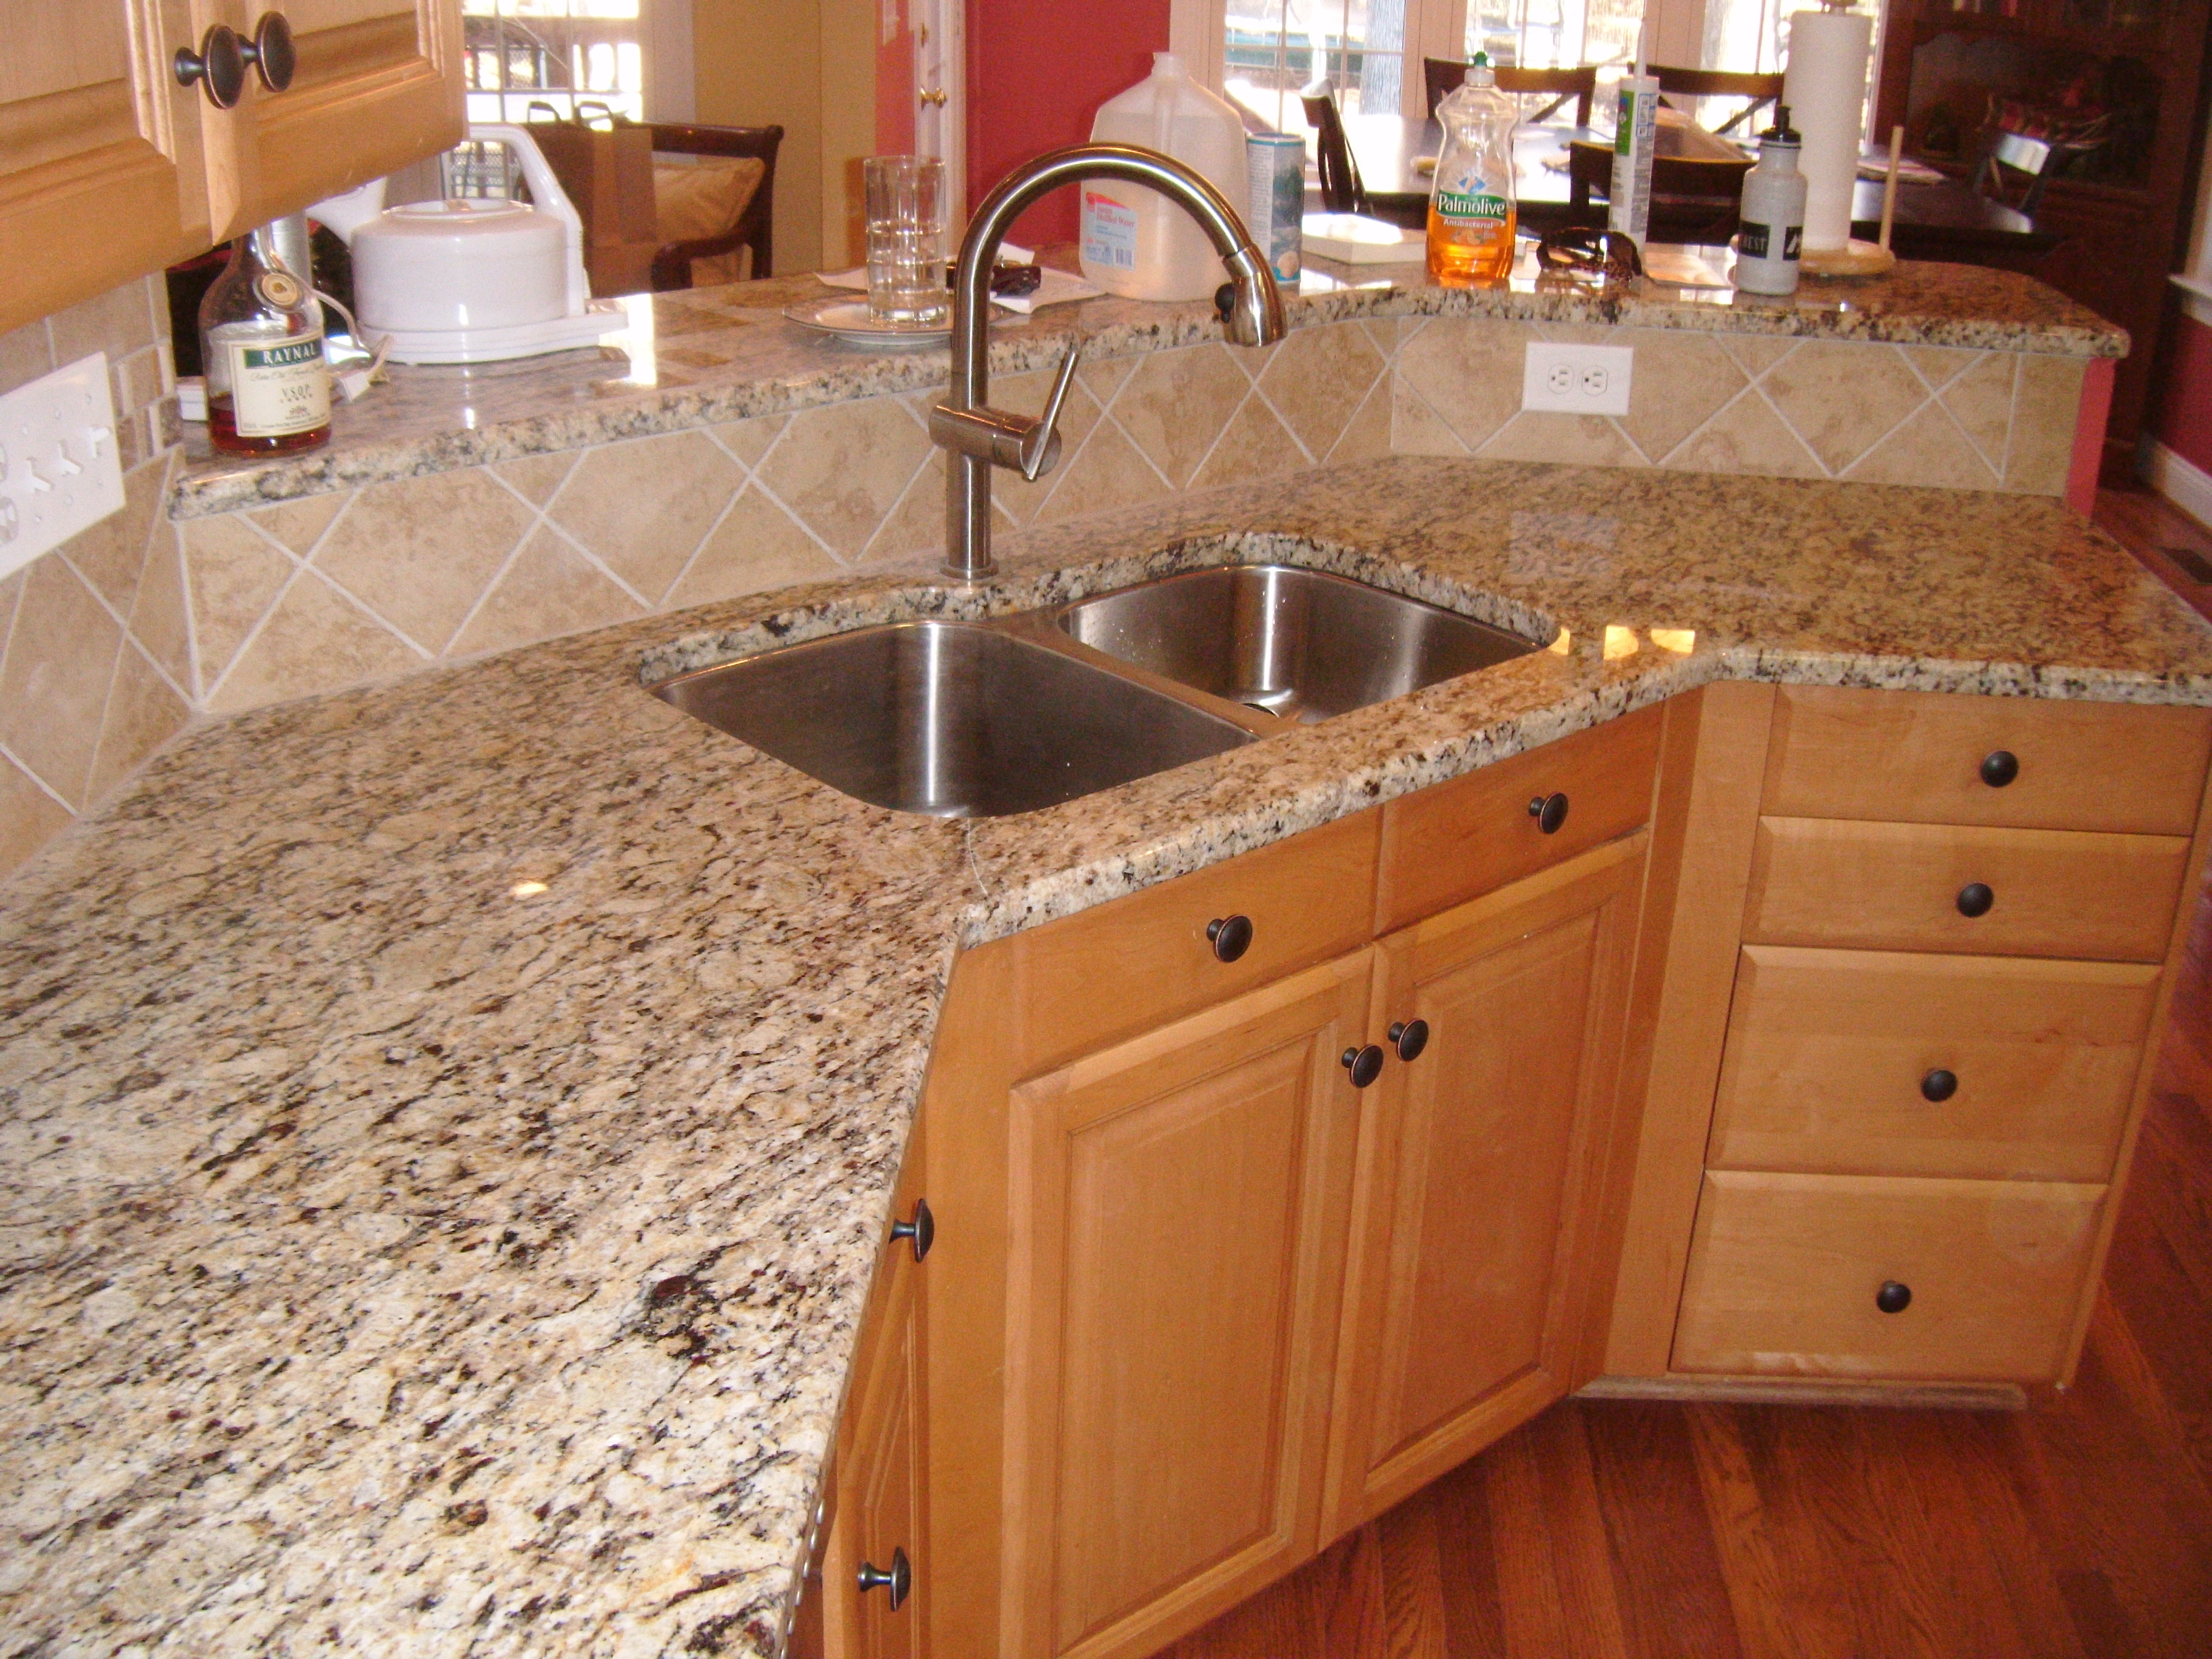 Countertop Options And Prices Santa Cecilia Granite With Tile Backsplash - Charlotte, Nc